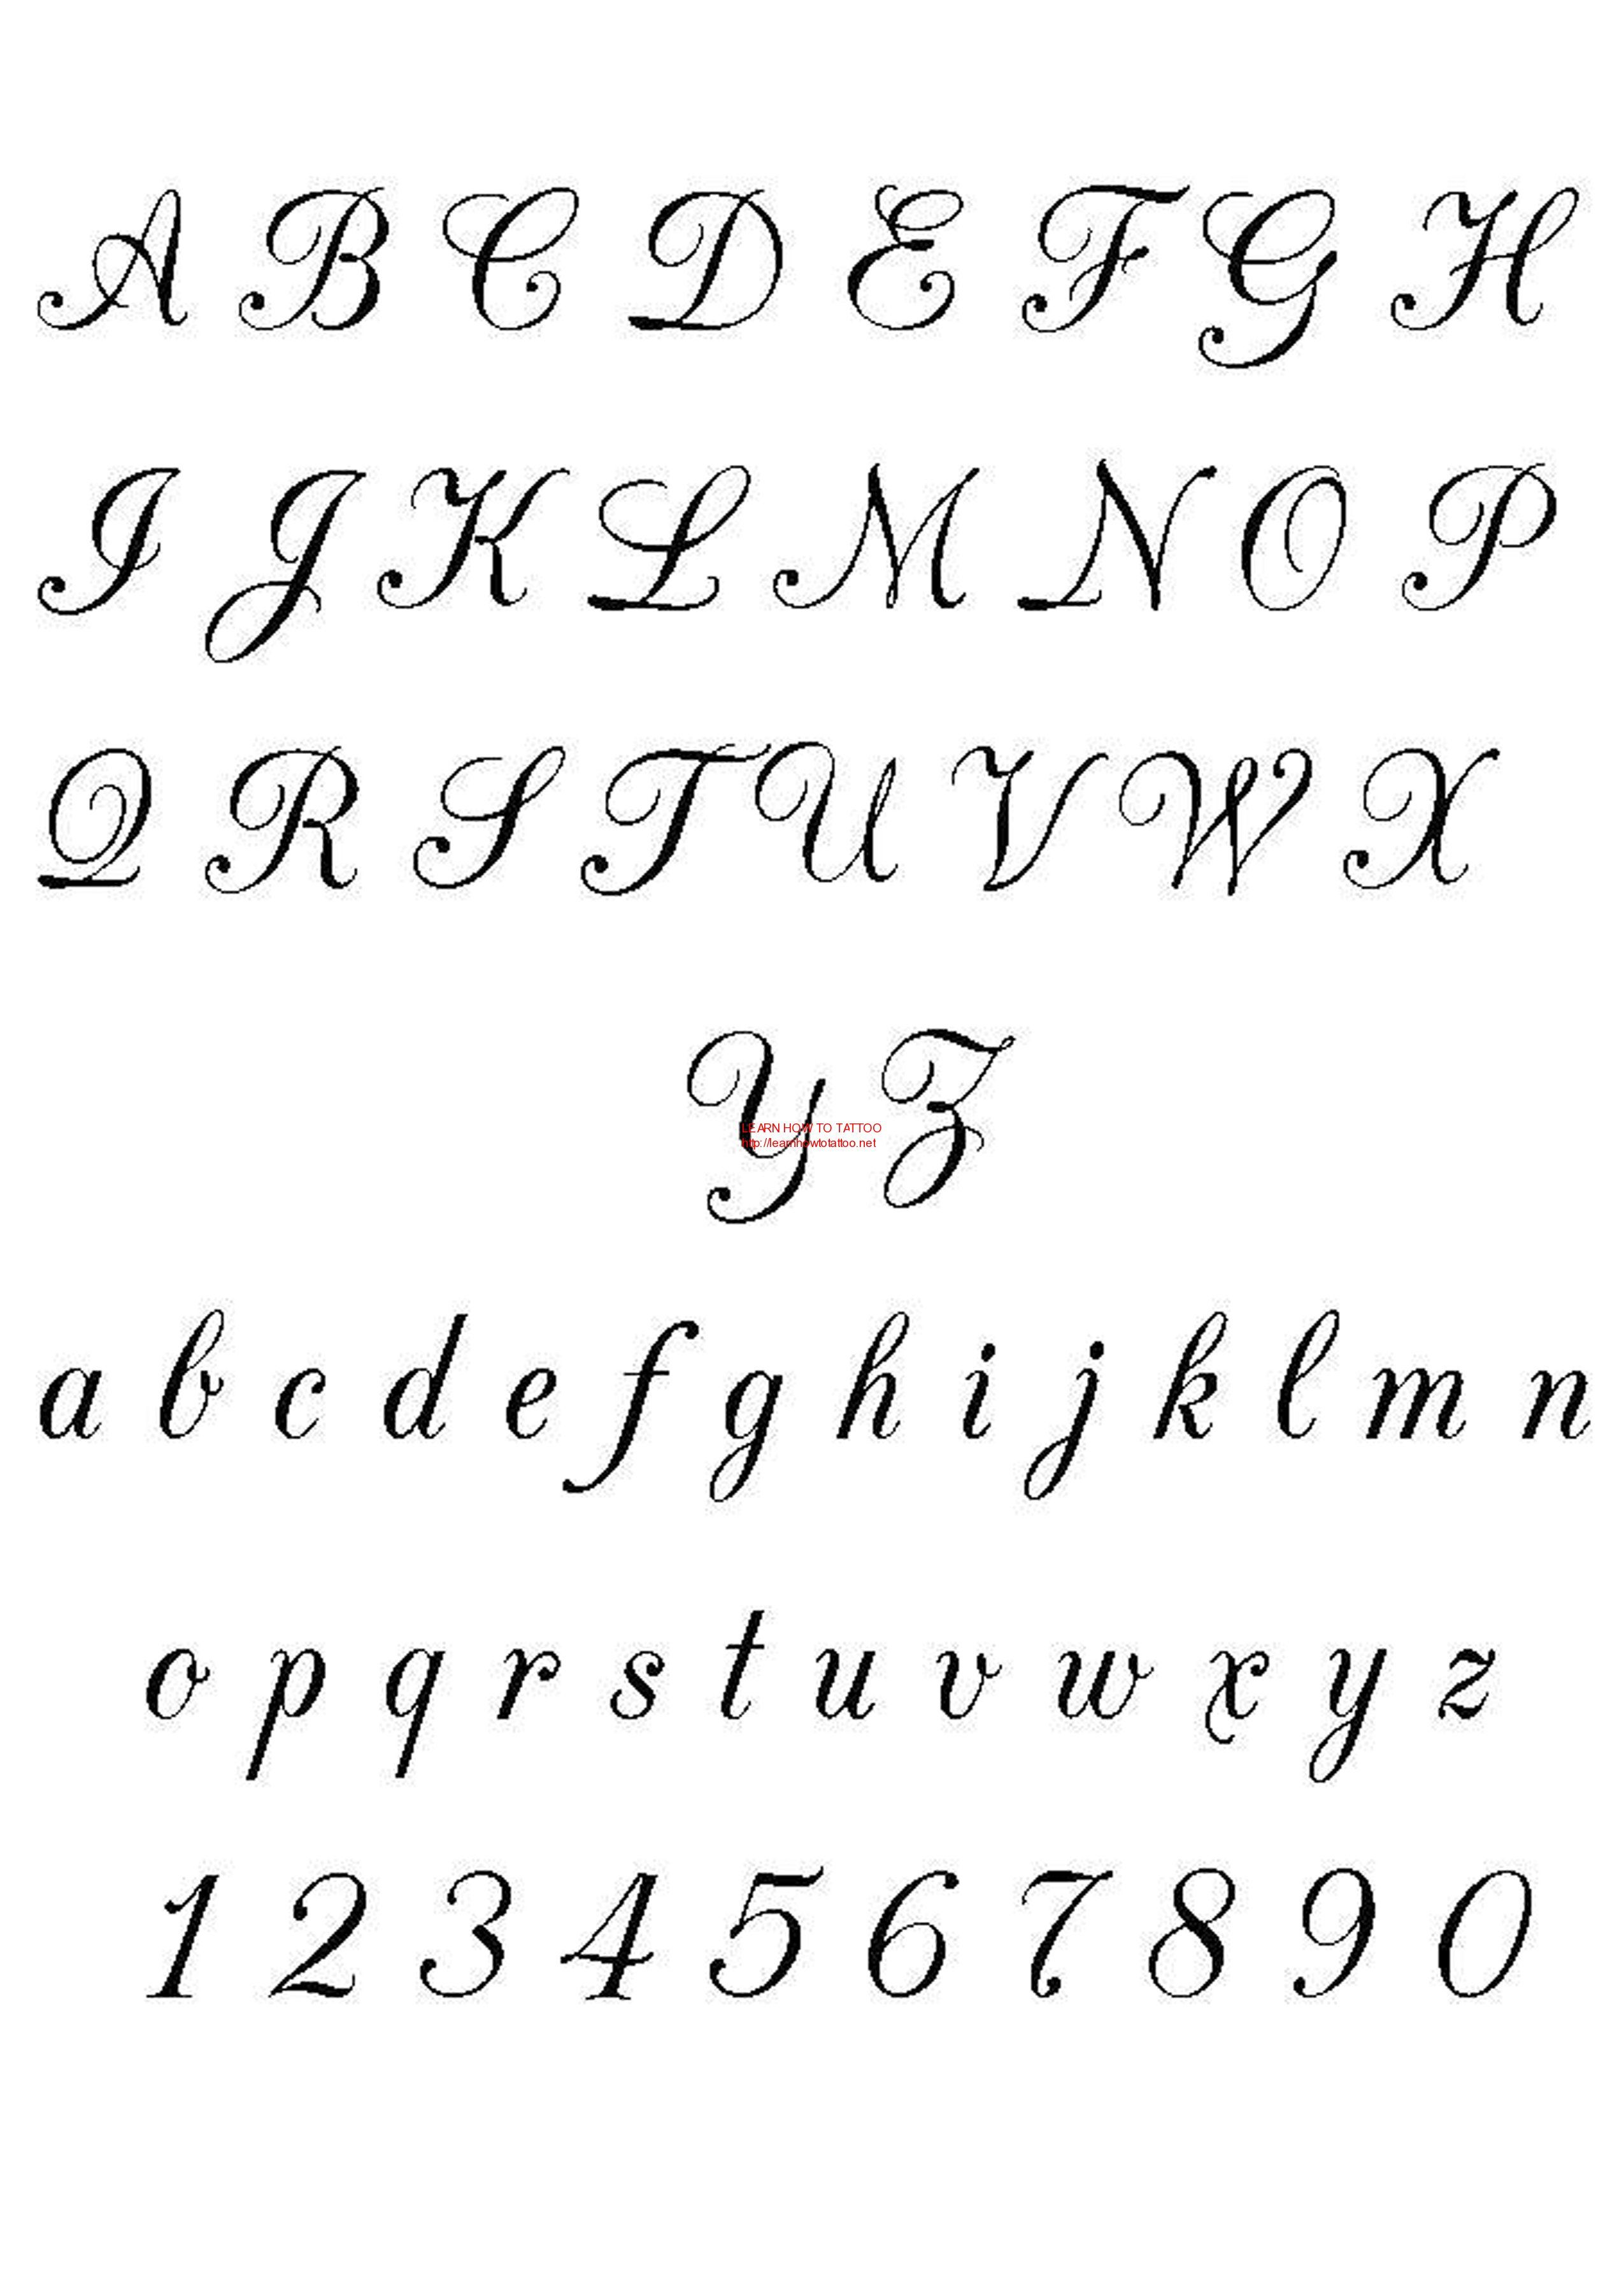 additionally Old Cursive Alphabet   images of cursive letters old english also 25 Cool Cursive Tattoo Fonts also Betsy Dunlap   Lettering  Script tattoos and Cursive further 25 Awesome Cursive Fonts together with Best 20  Rib Tattoo Script ideas on Pinterest   Script tattoo also  moreover  in addition  as well  moreover 25  best ideas about Pretty cursive fonts on Pinterest. on tattoo fonts simple cursive